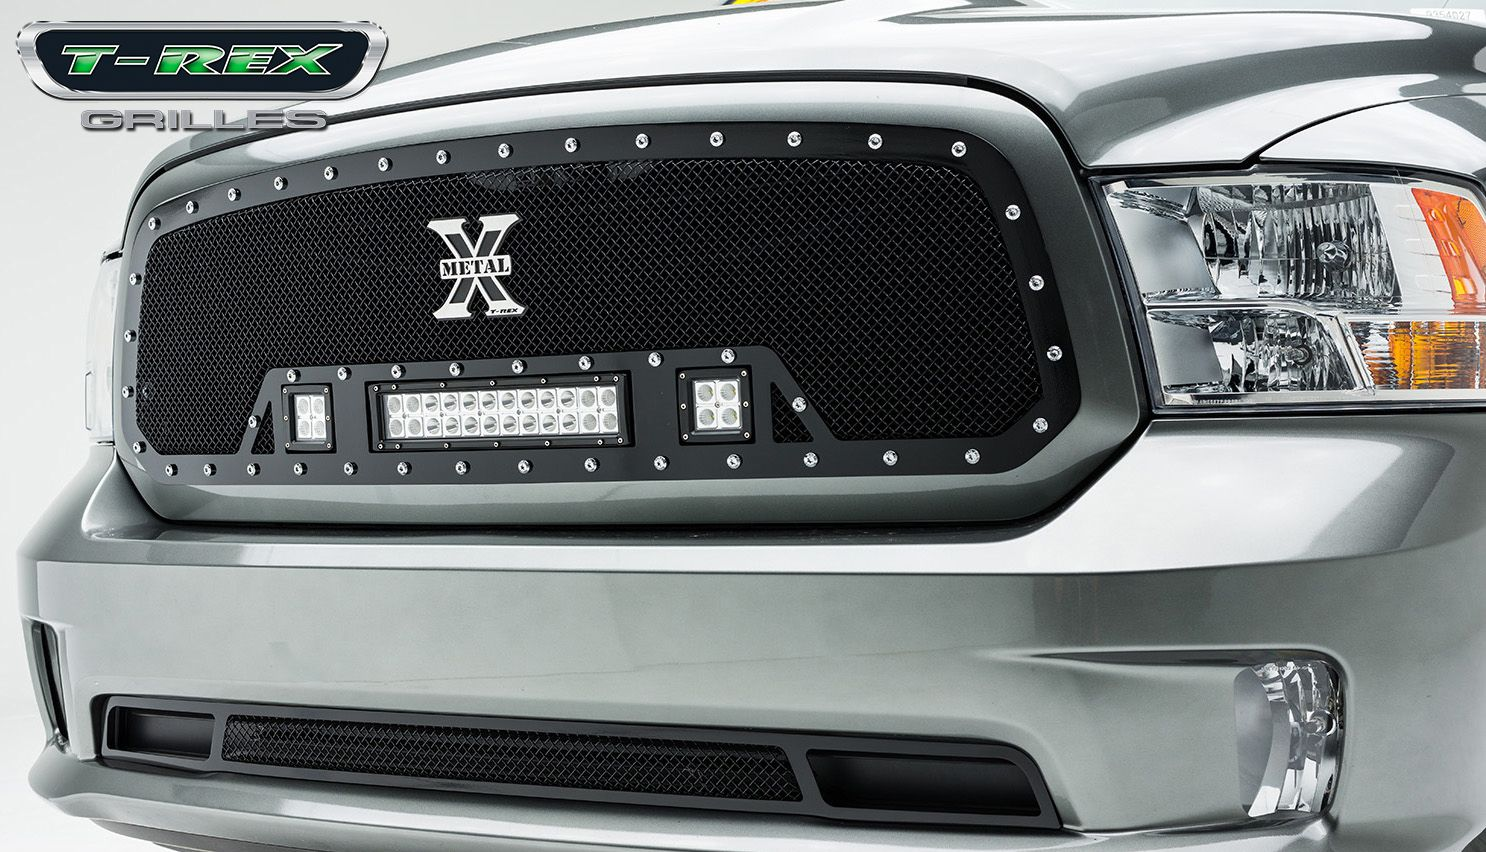 2013 Dodge Ram 1500 Torch Series Led Light Grille Formed 2009 Hemi Engine Diagrams Mesh Main Full Opening Requires Cutting Factory Cross Bar In Oem For